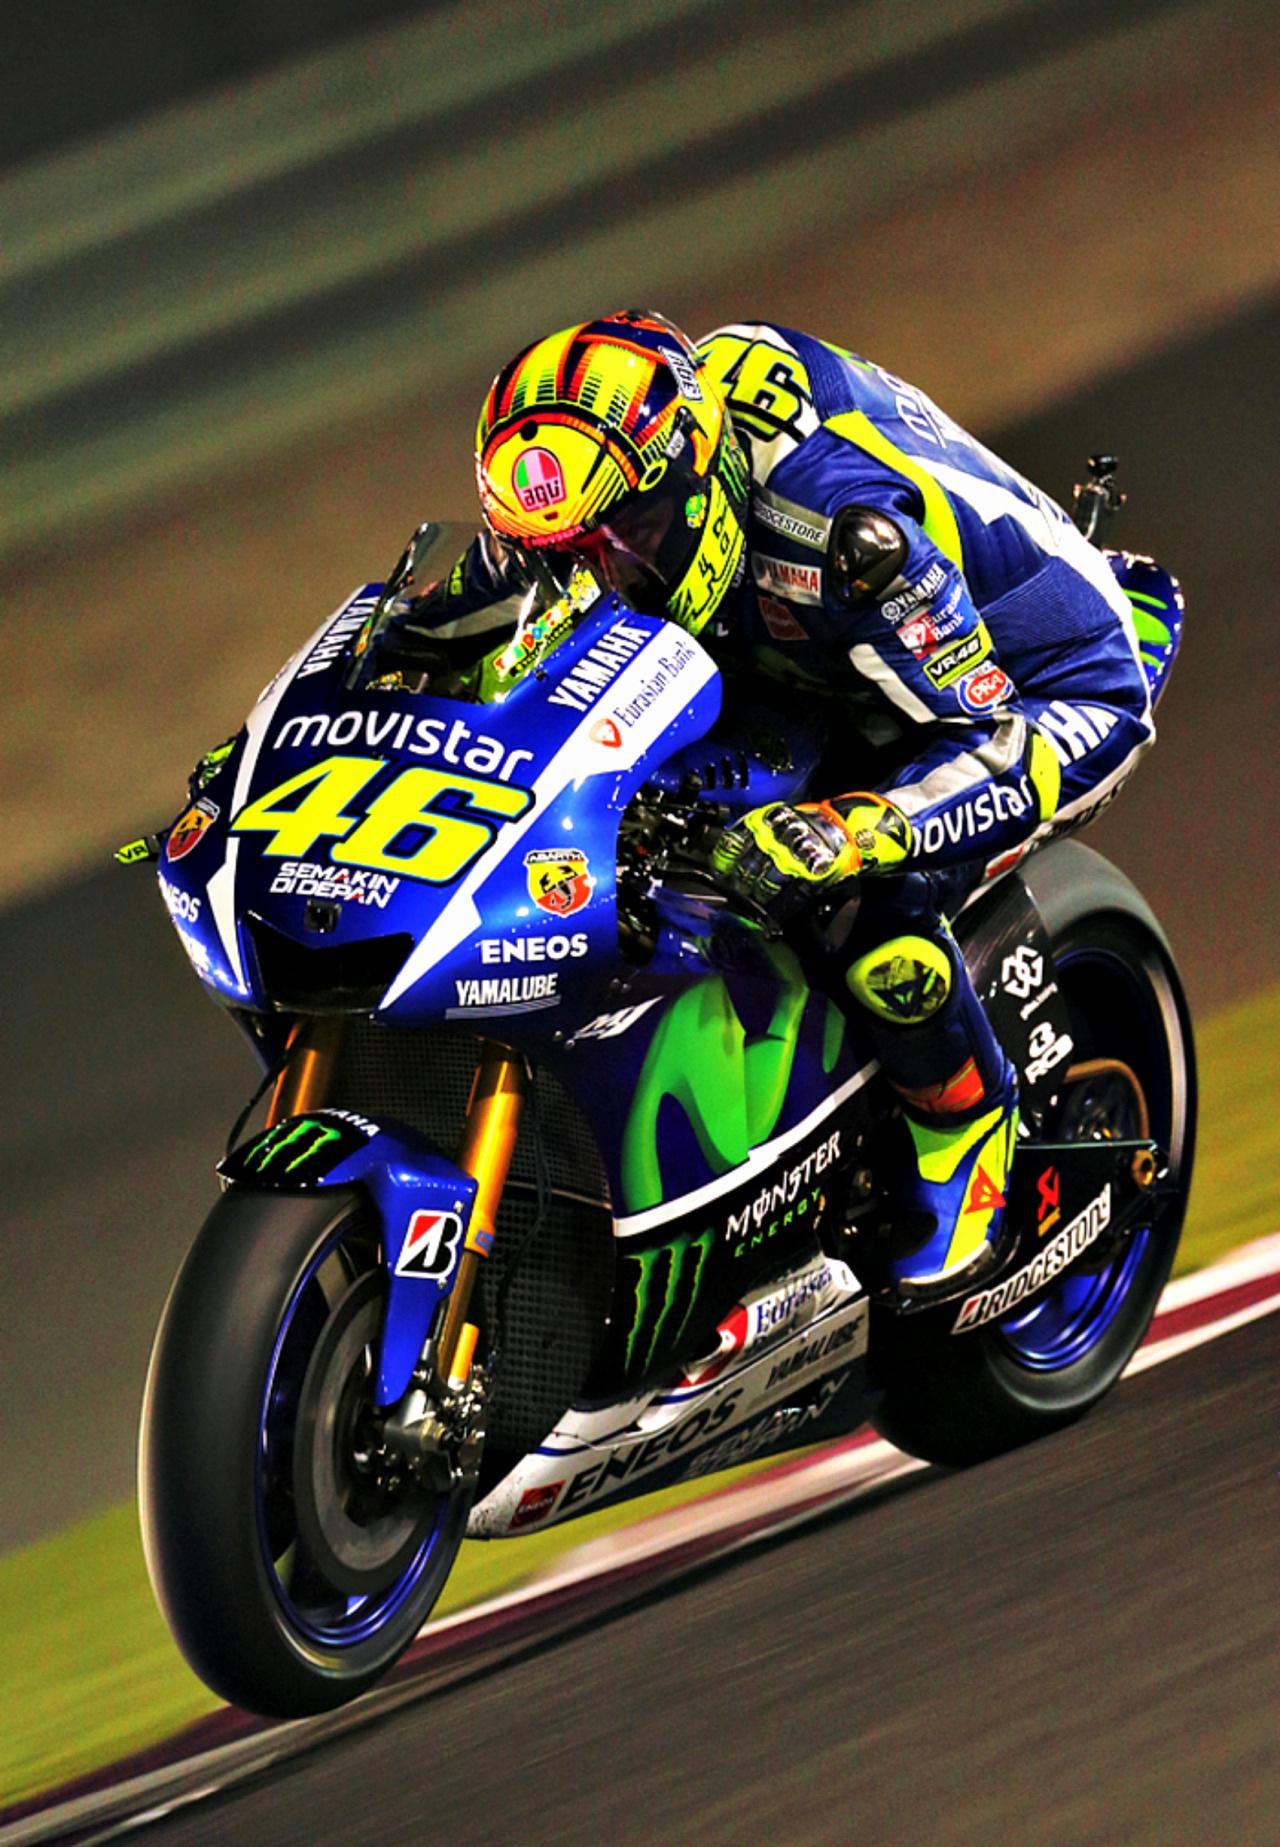 43+] Valentino Rossi Wallpapers